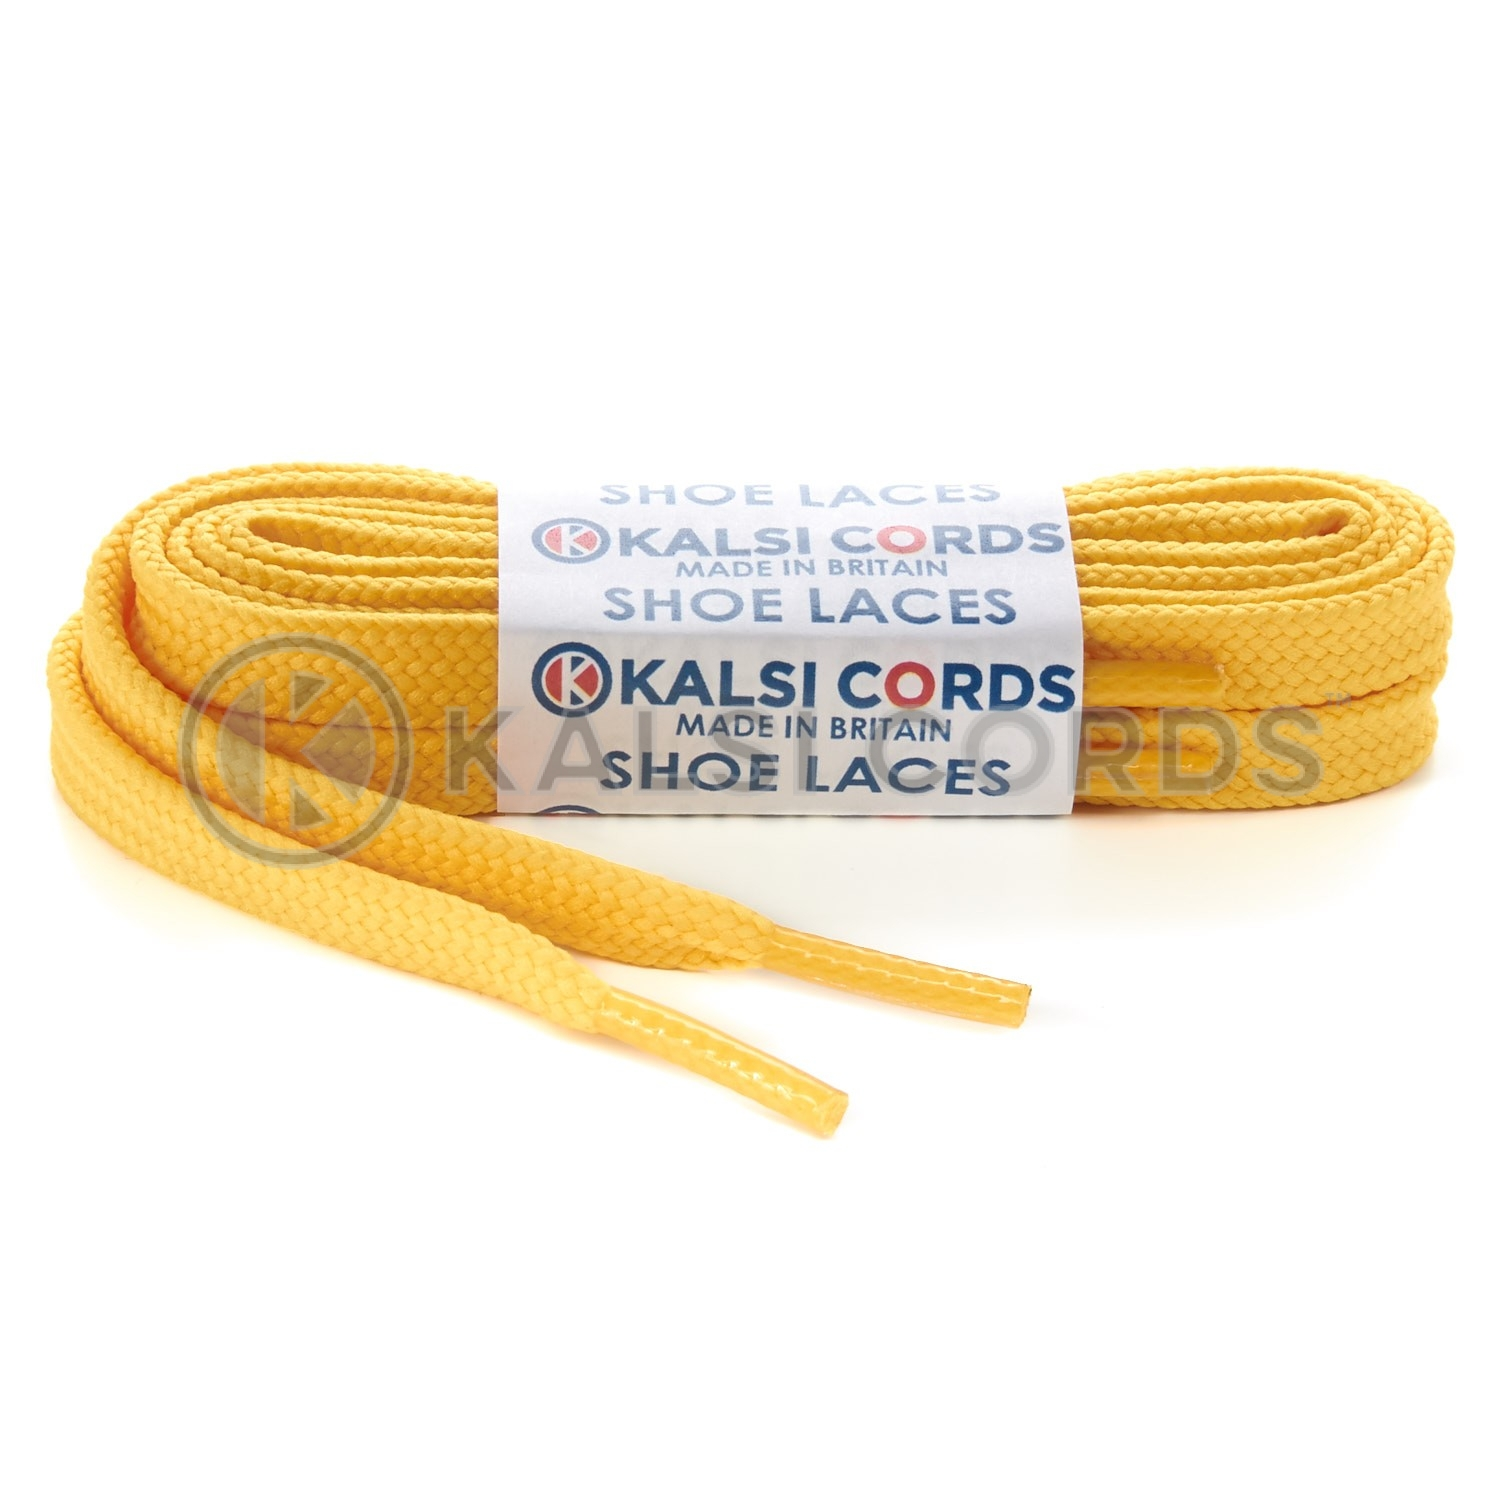 R1176 9mm Flat Shoe Laces Tubular Yellow PG720 Sports Trainers Boots Footwear Hoodies Joggers Drawstring Drawcord Braid